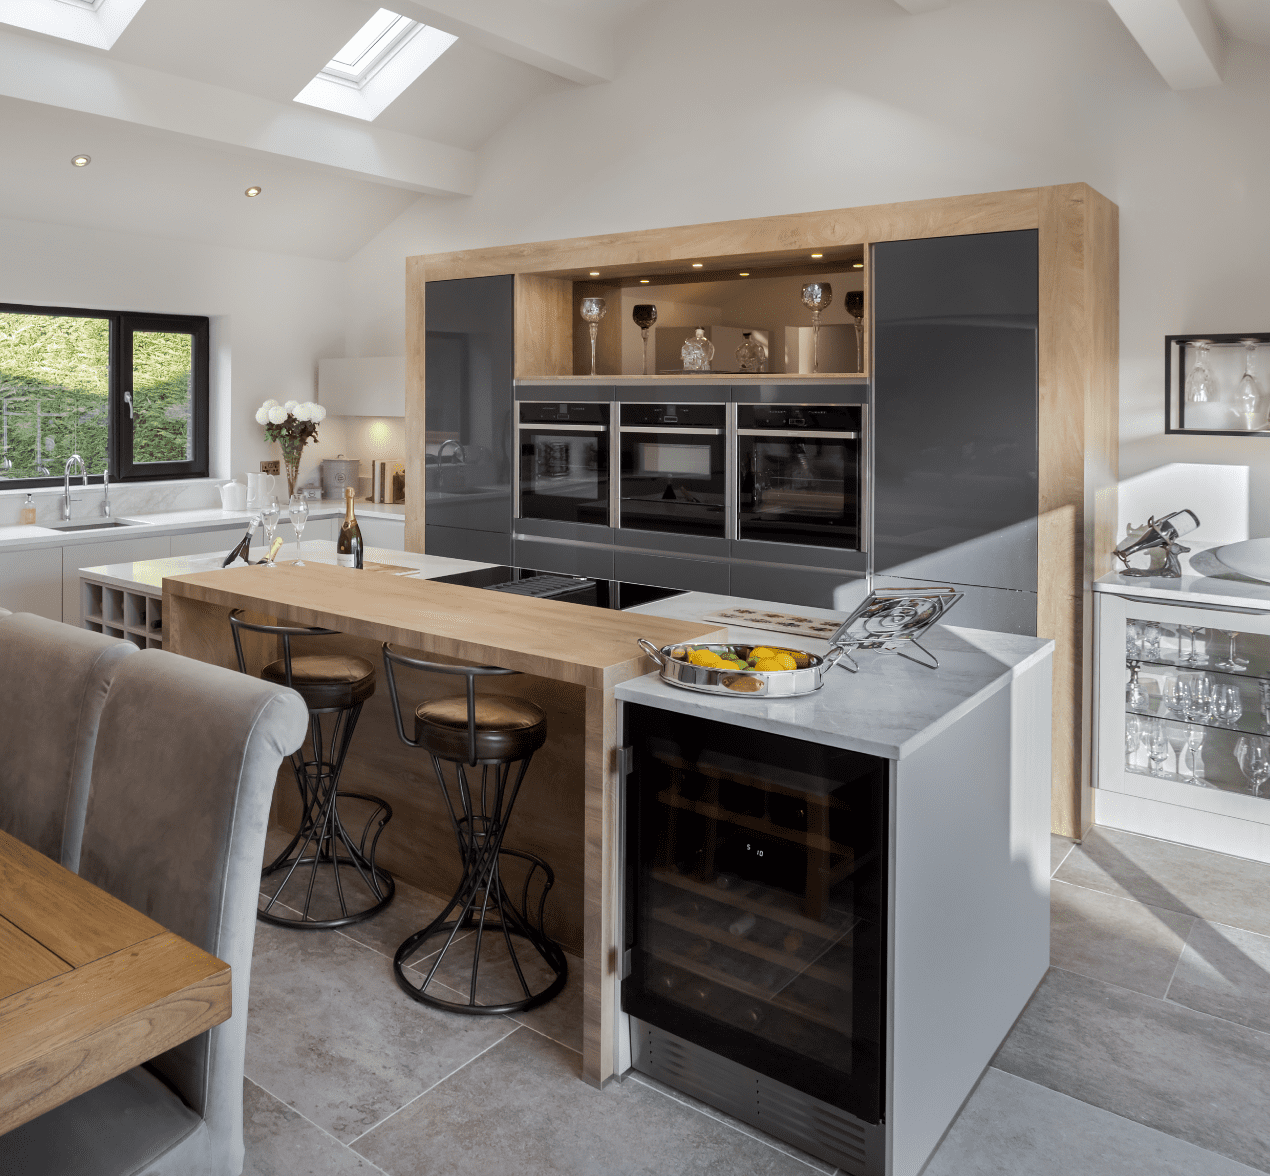 A Contemporary Kitchen with a Country feel